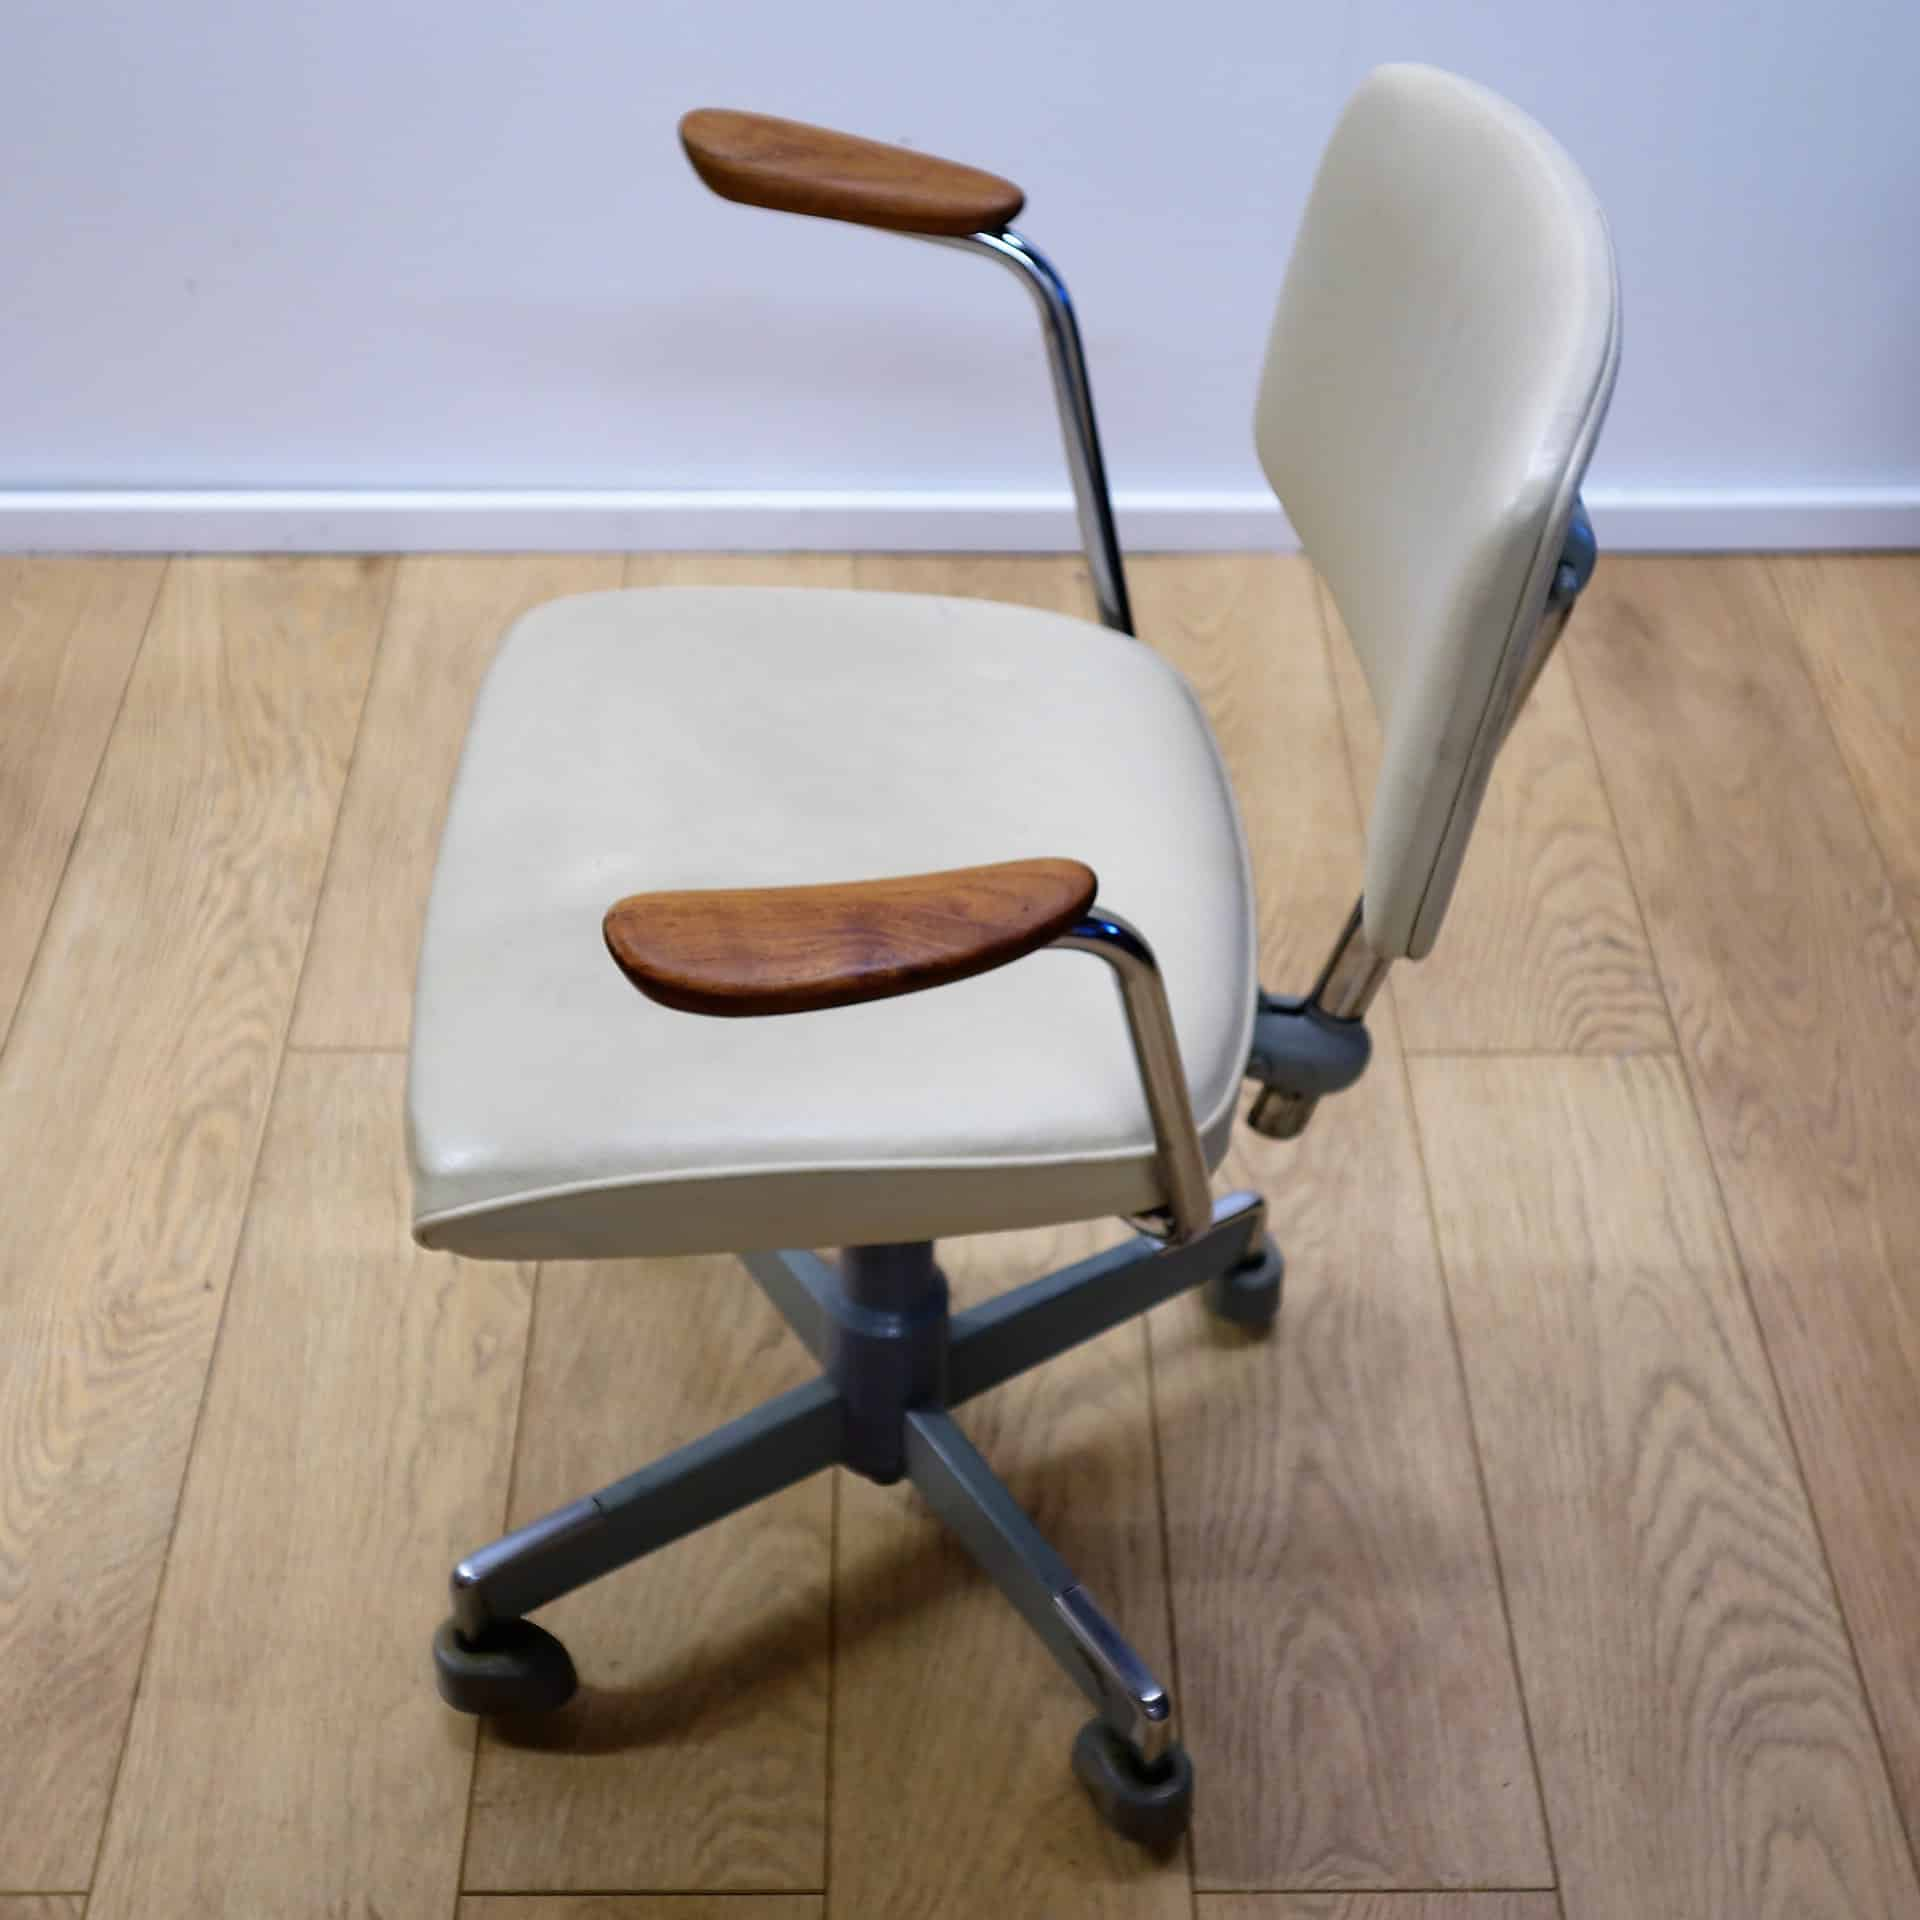 ergonomic chair norway wedding cover hire glasgow area 1960s leather office by hag mark parrish